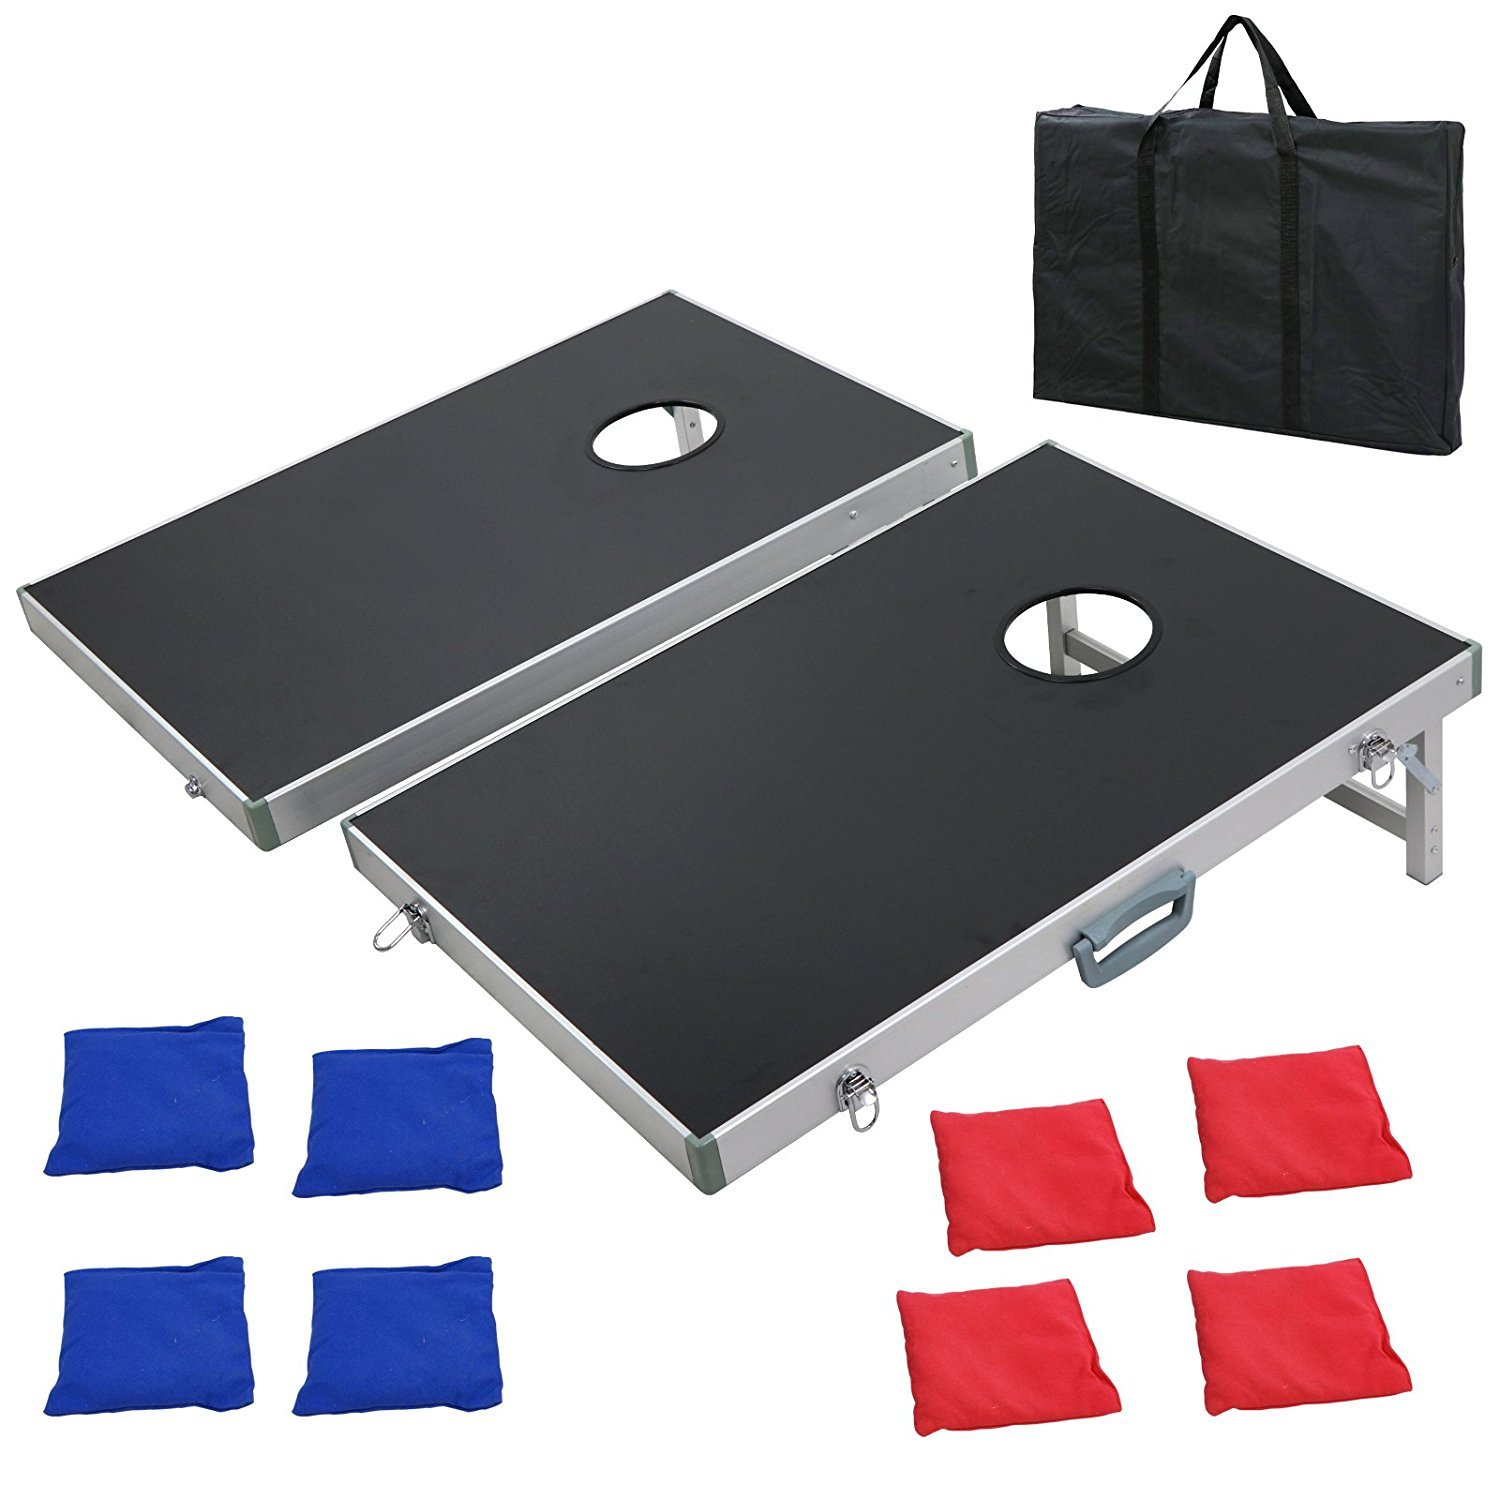 ZENY 3' x 2' Cornhole Bean Bag Toss Game Set with Carrying Case Aluminum Lightweight Corn Hole Board by ZENY (Image #3)